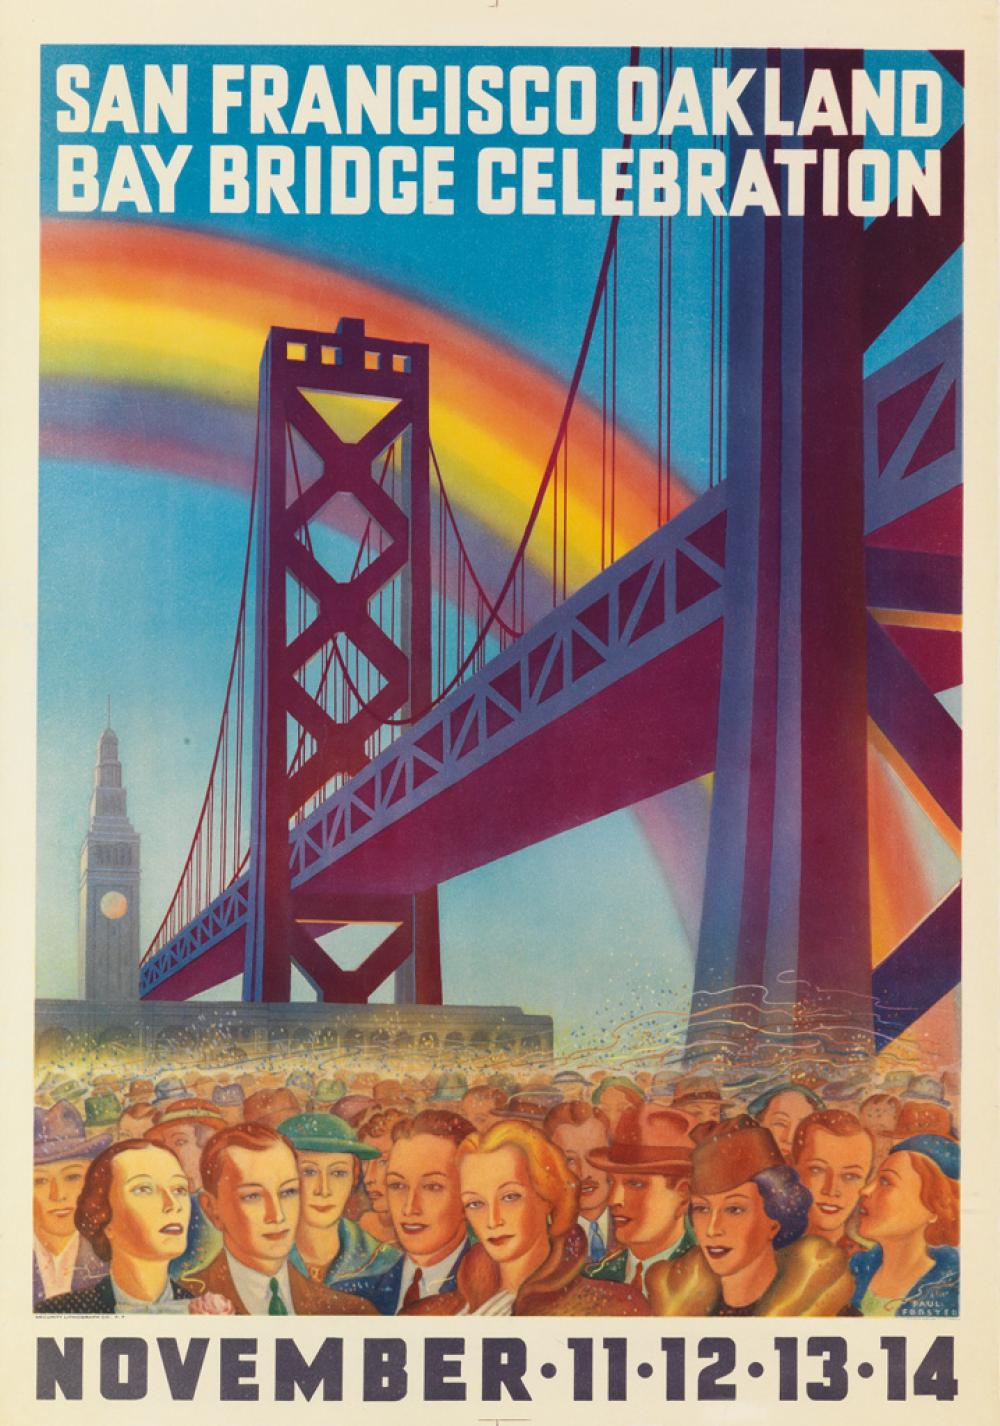 PAUL FORSTER (DATES UNKNOWN). SAN FRANCISCO OAKLAND / BAY BRIDGE CELEBRATION. 1936. 23x16 inches, 58x40 cm. Security Lithograph Co., Sa